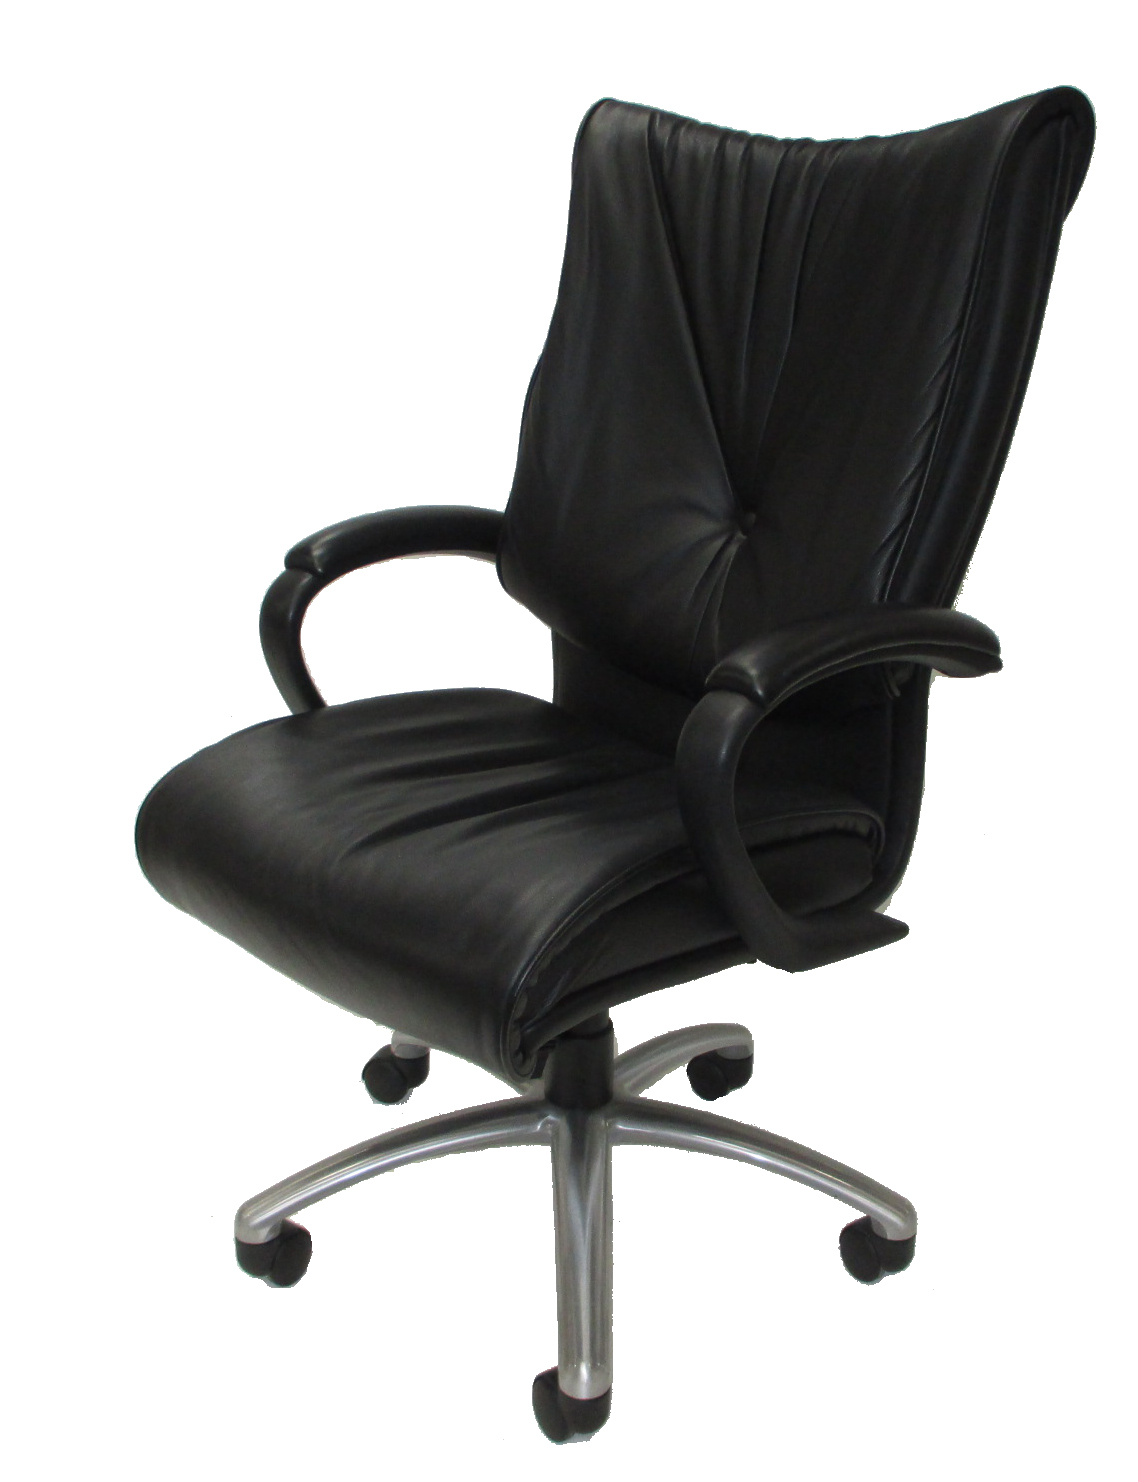 office chair that sits higher recliner covers jcpenney used furniture sit on it glove task with